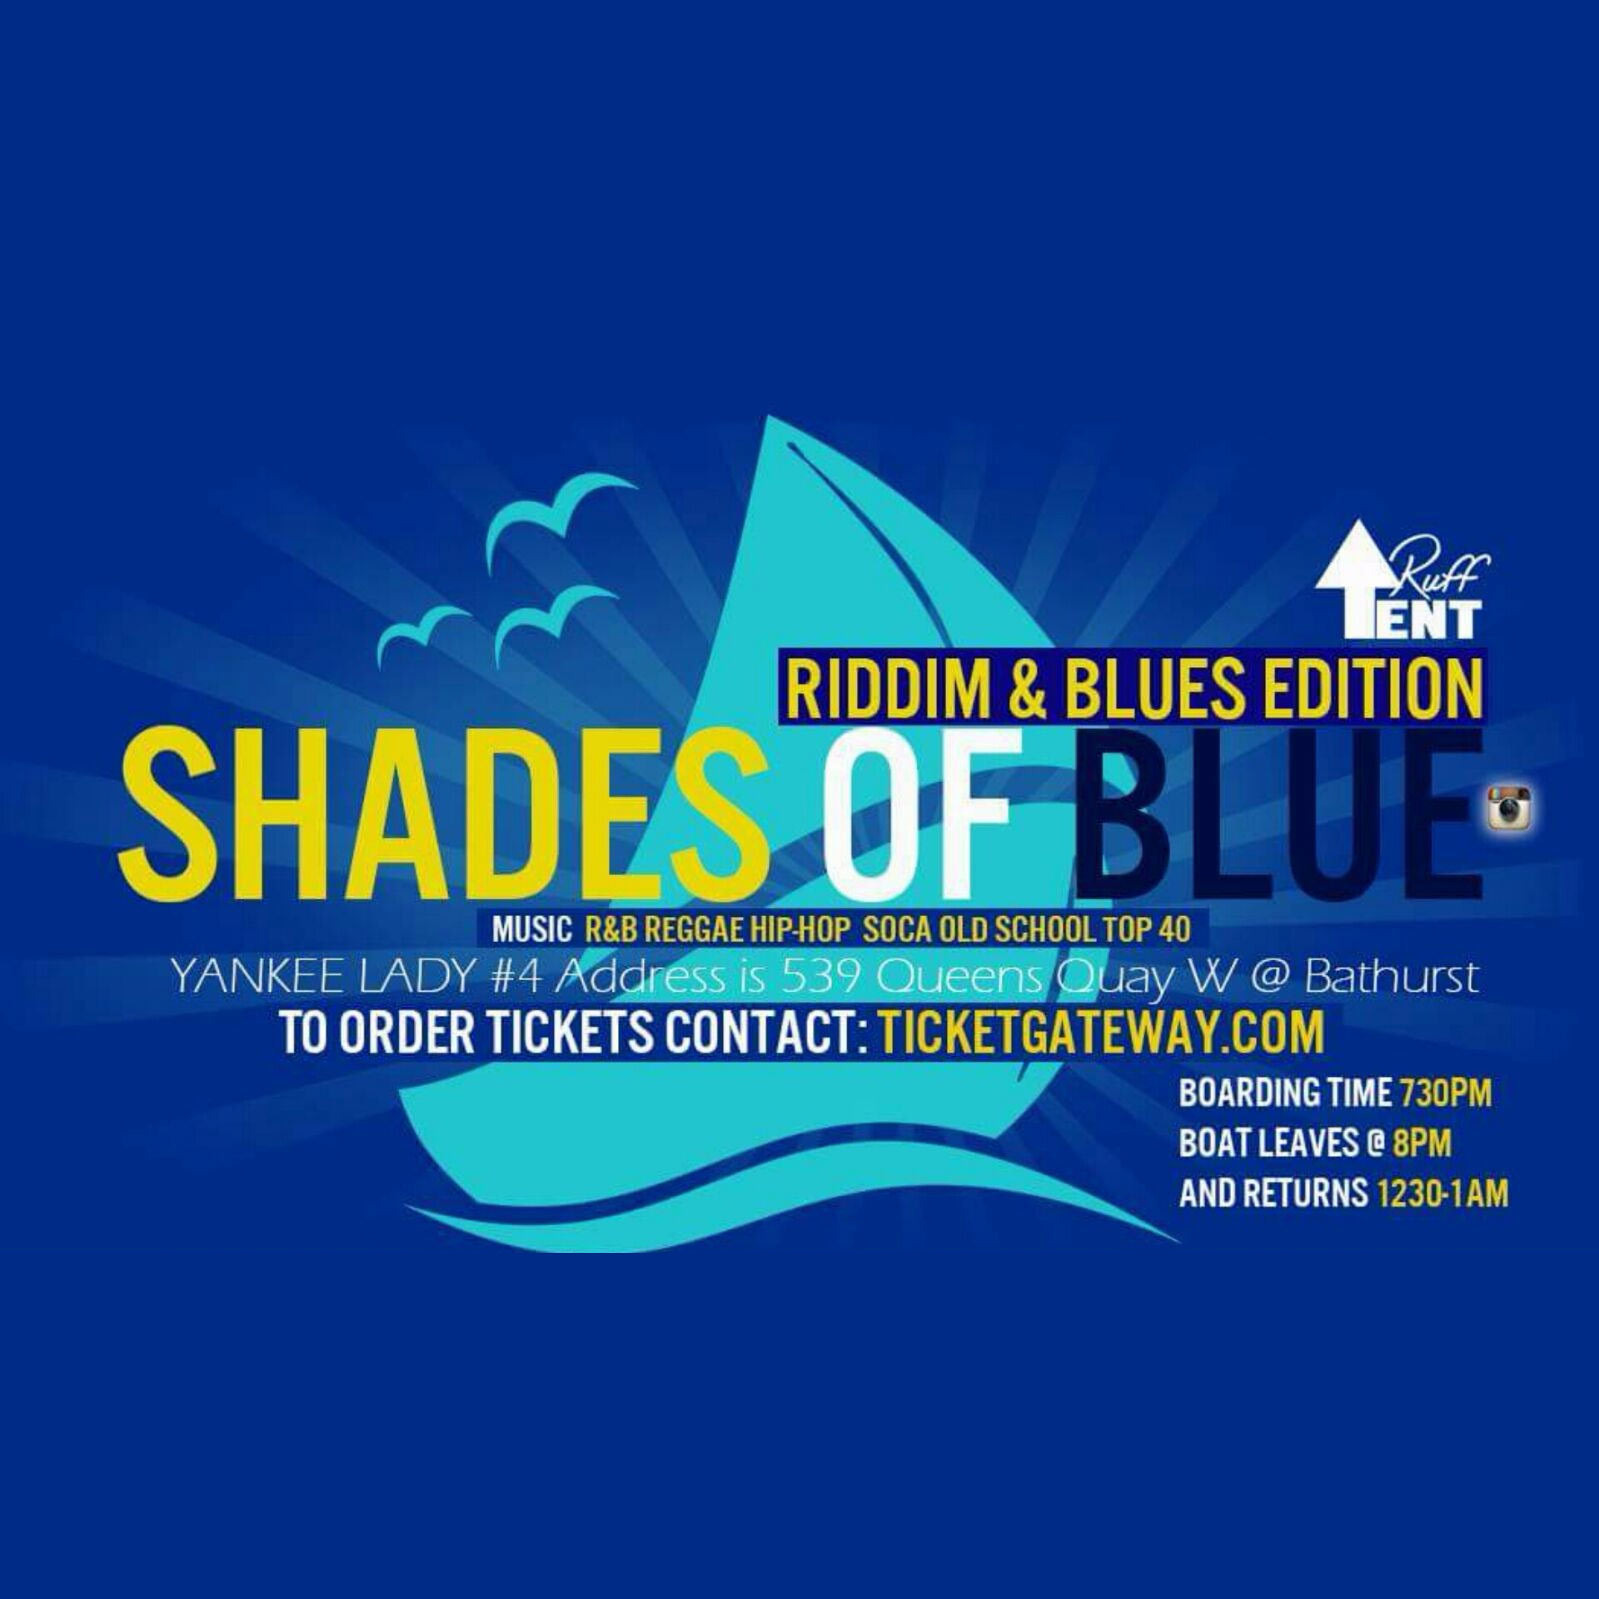 SHADES OF BLUE 2016